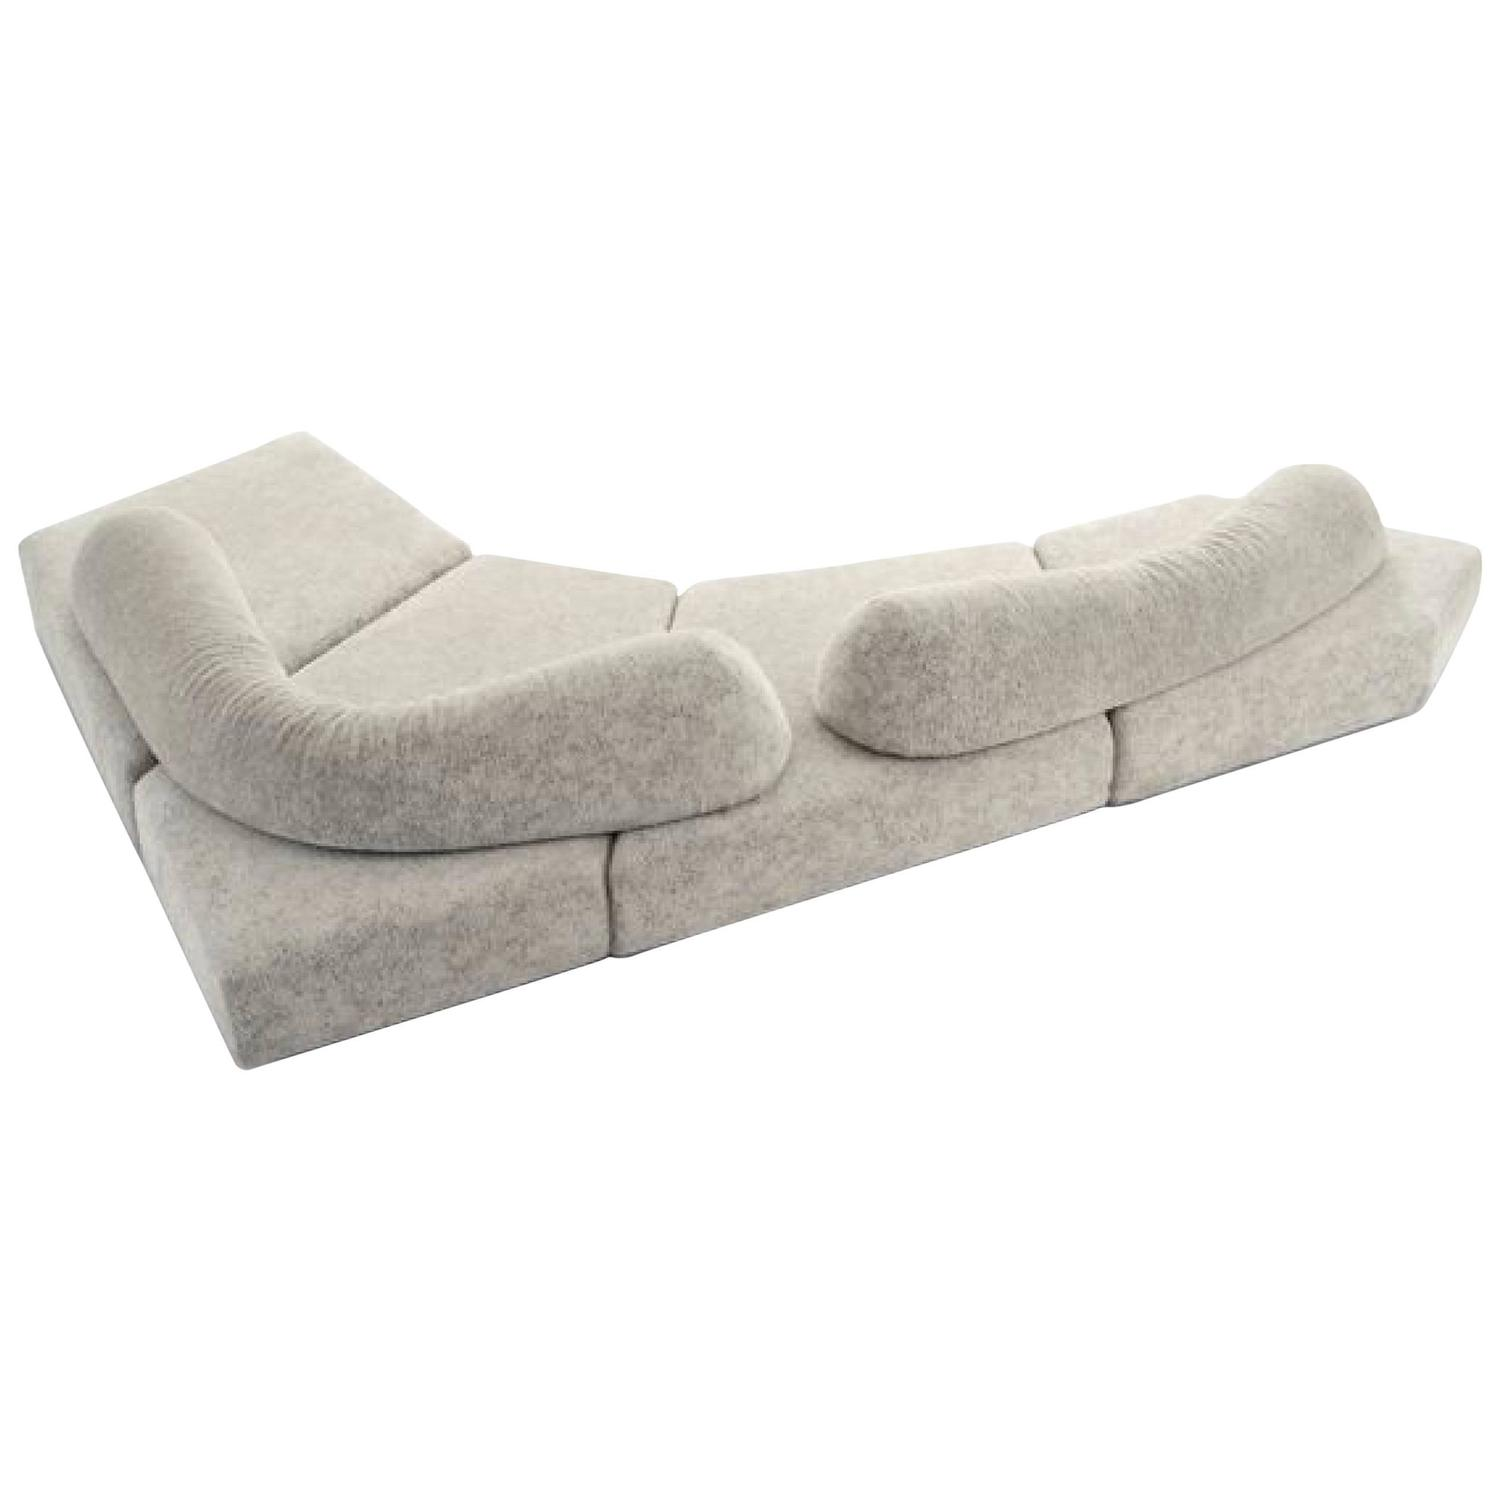 the Rocks Modular Sectional Sofa by Edra For Sale at 1stdibs